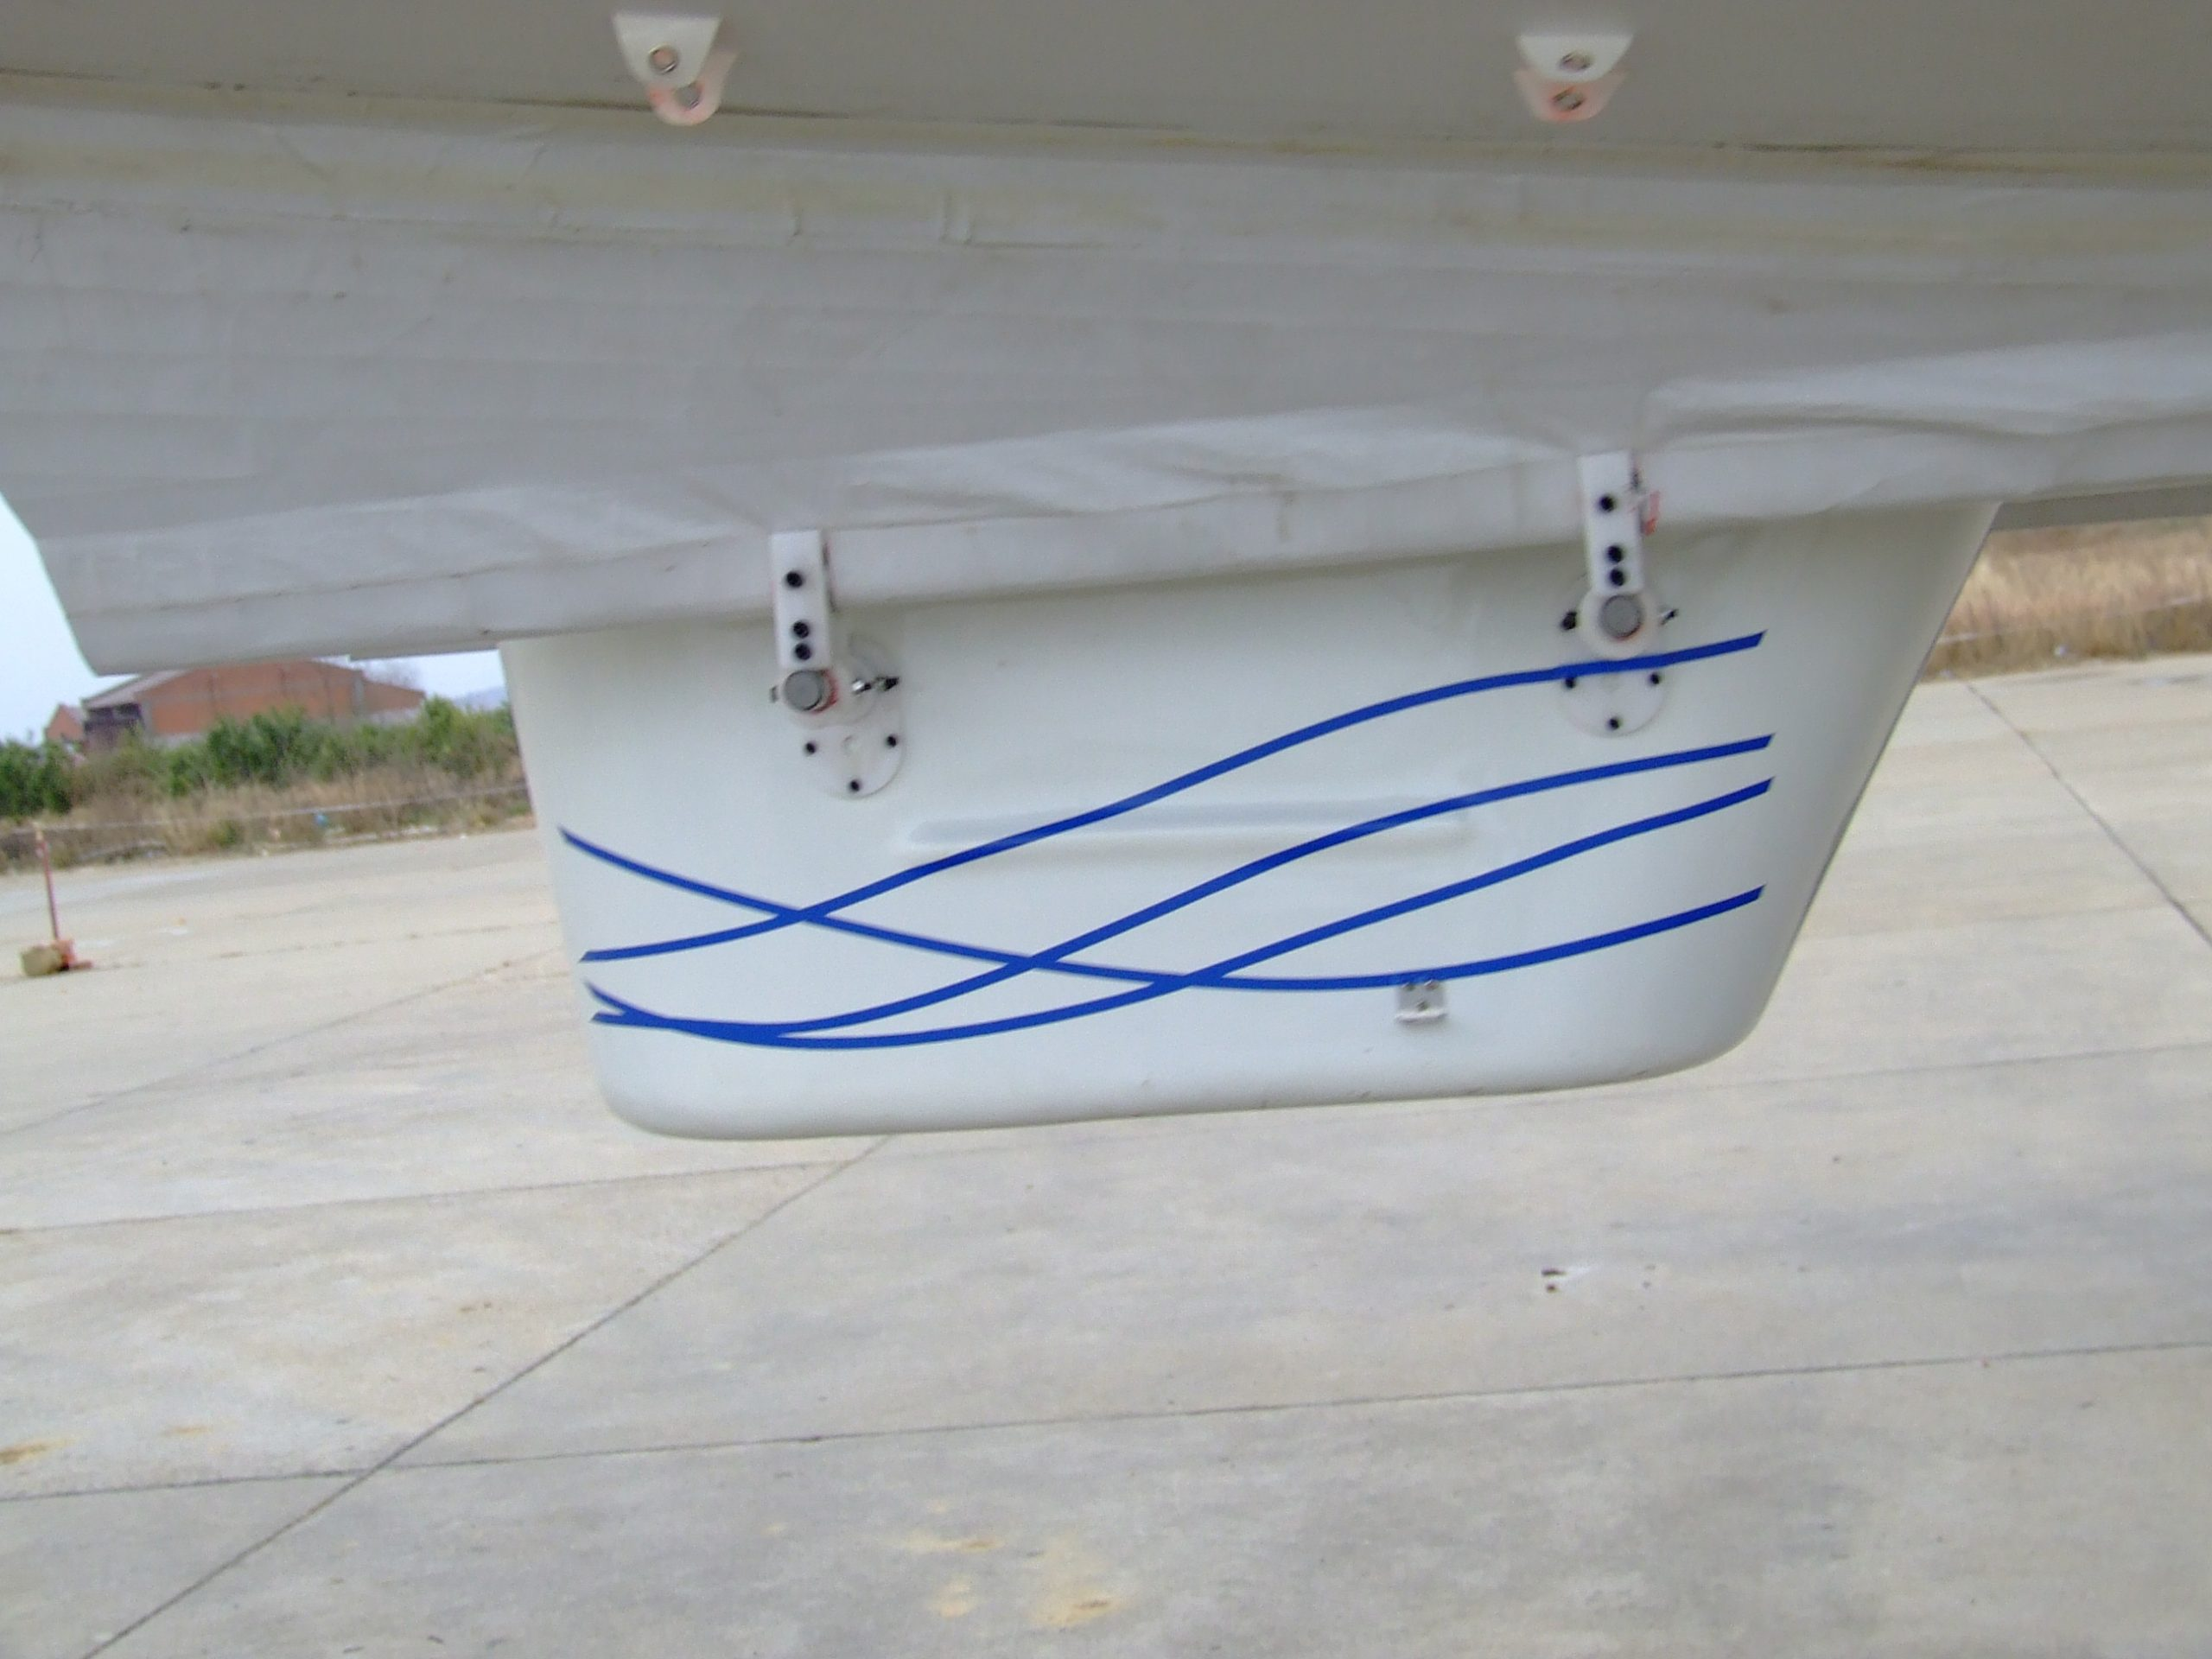 Task Cabin unmanned airship